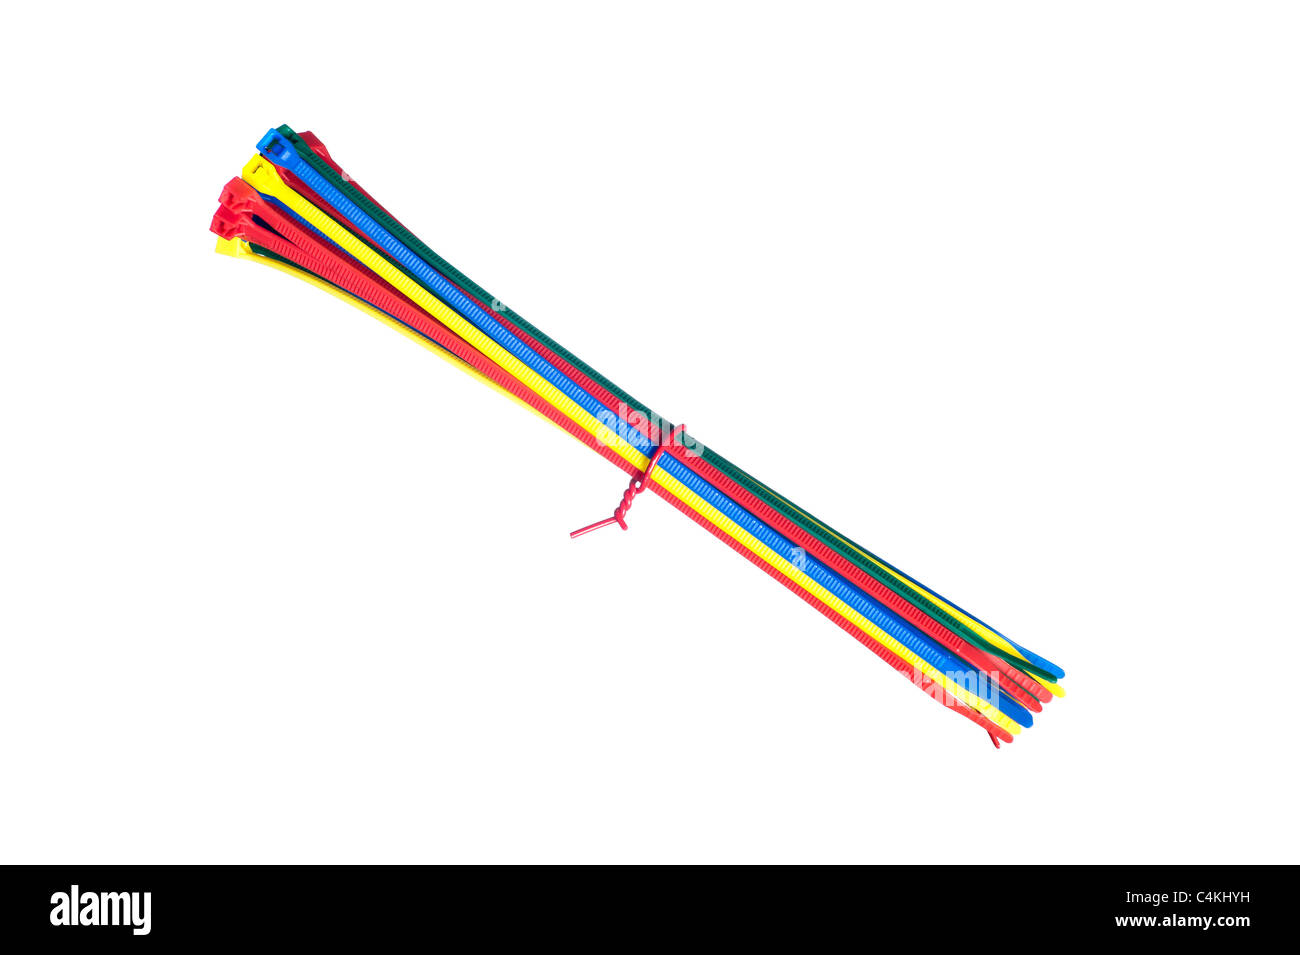 A group of cable zip ties isolated on white. - Stock Image